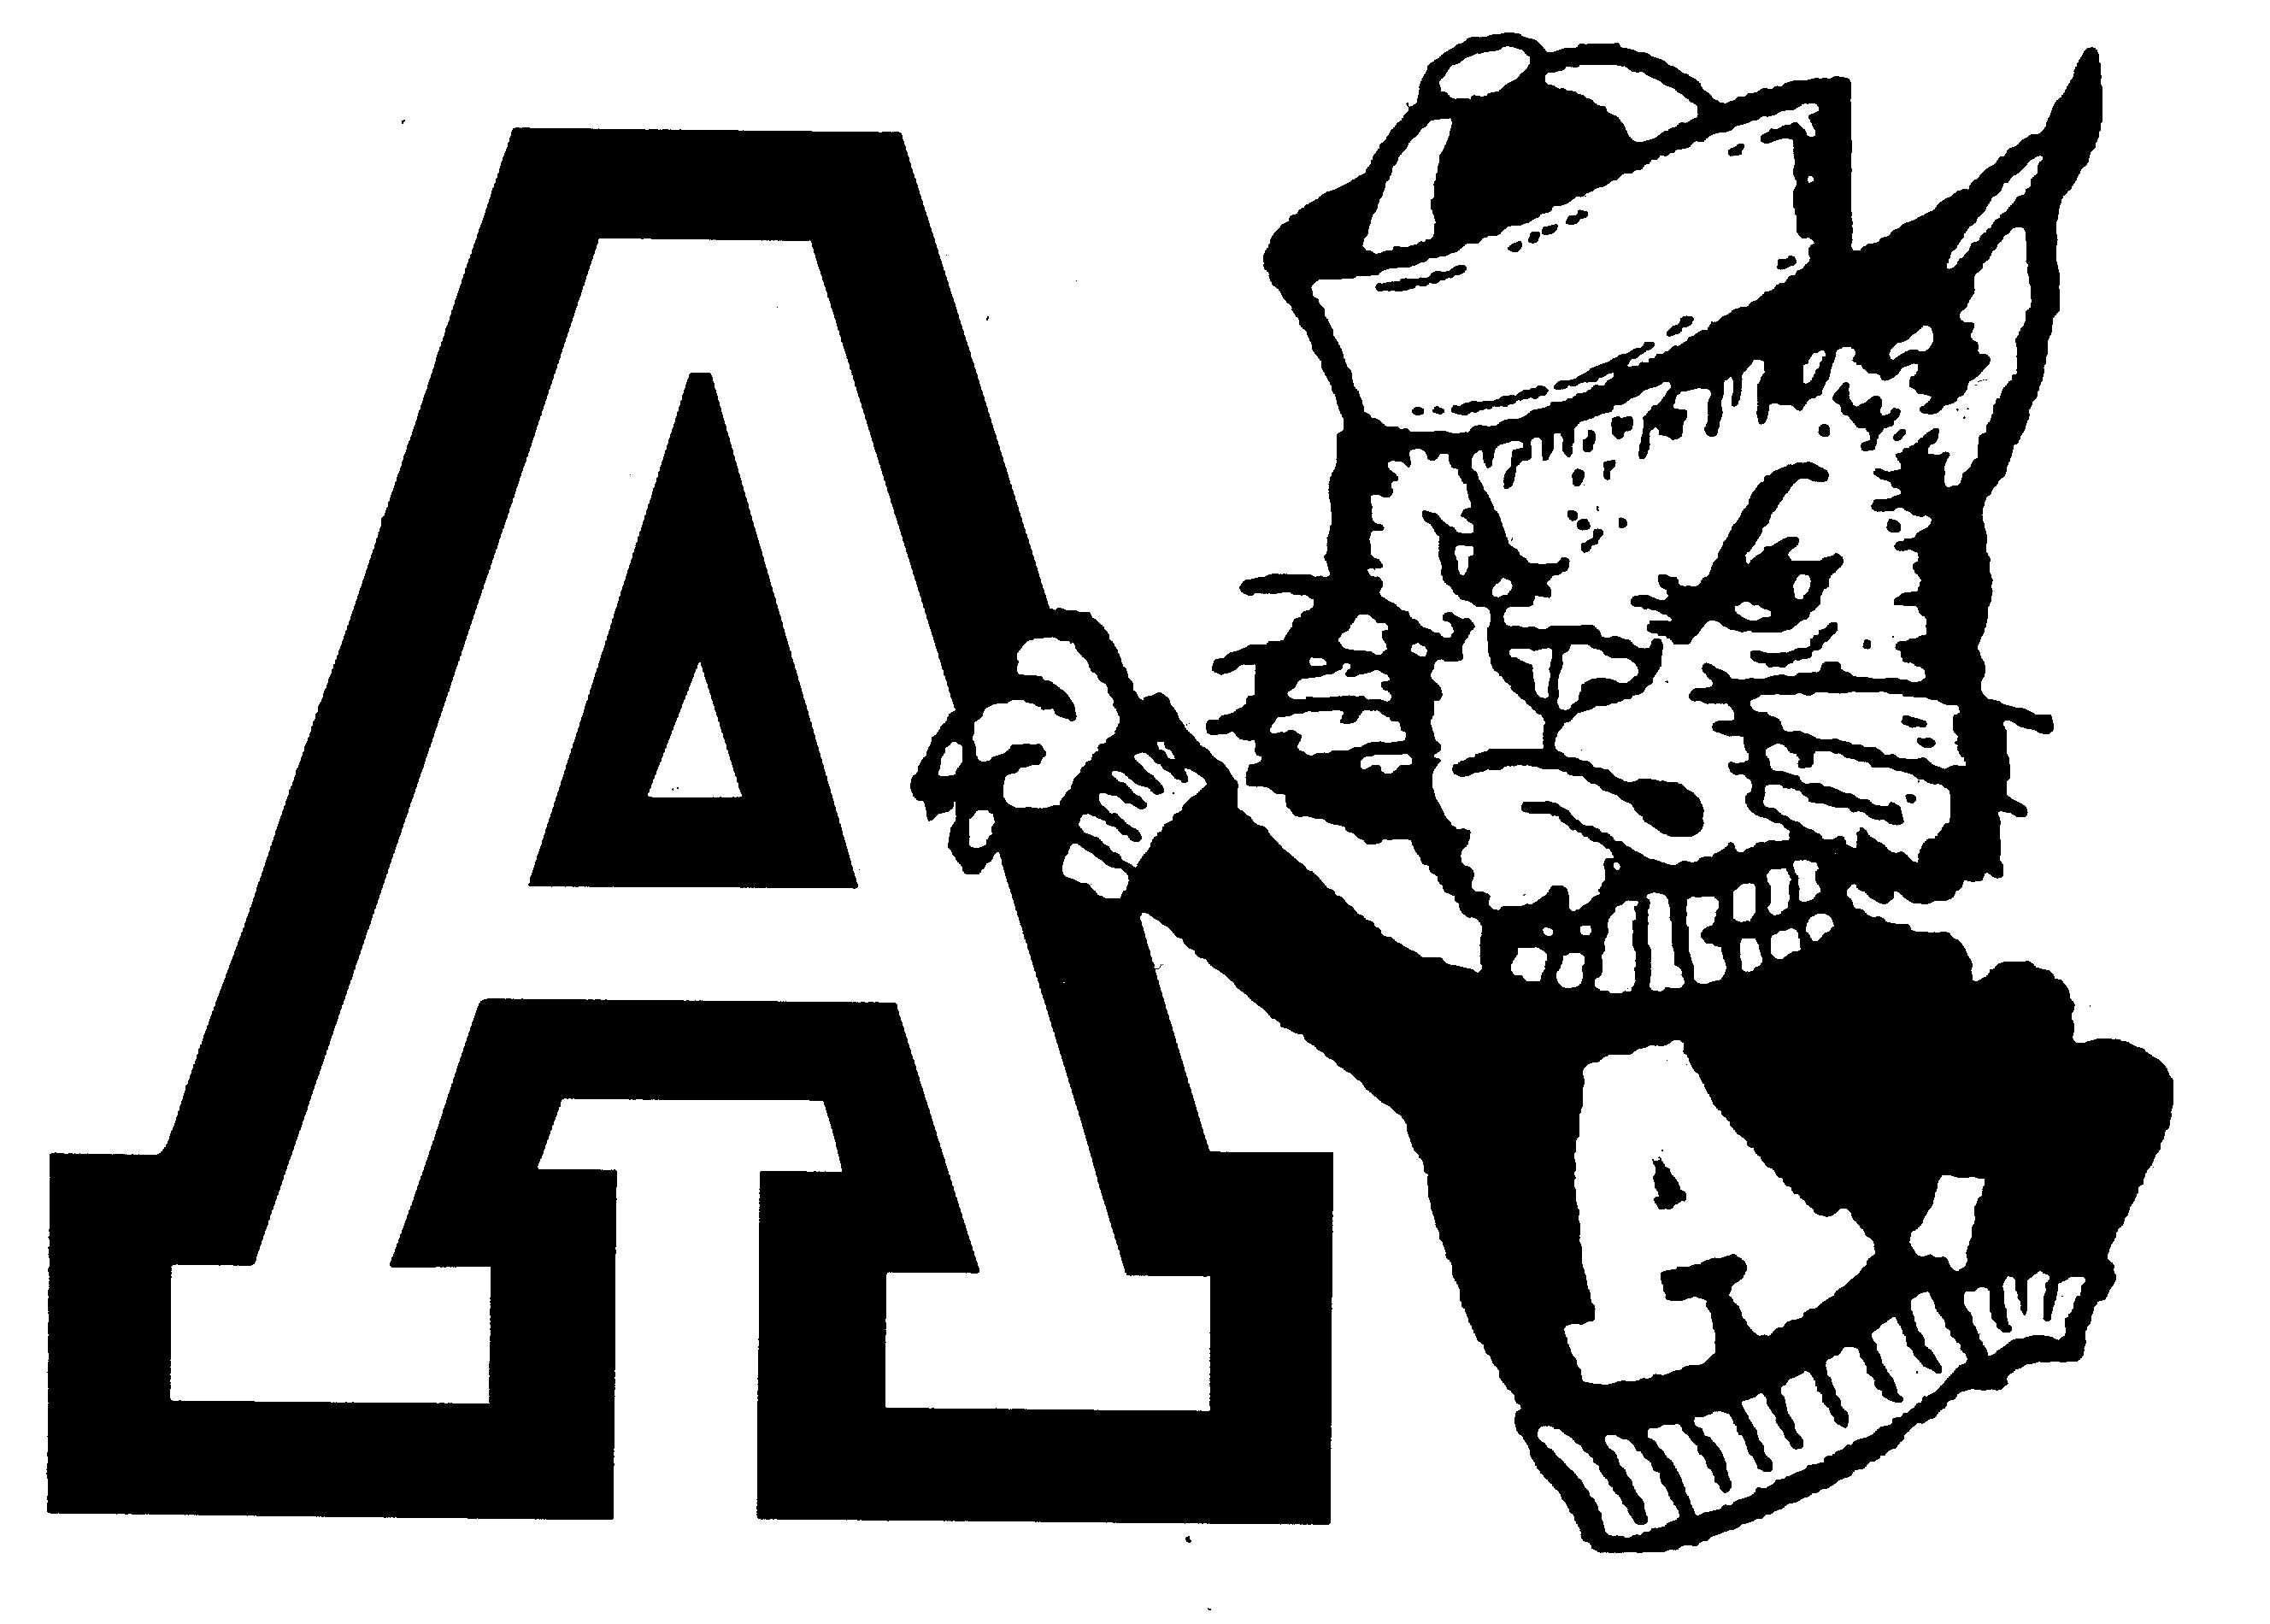 So After Looking At Vintage Logos How Did The College Football